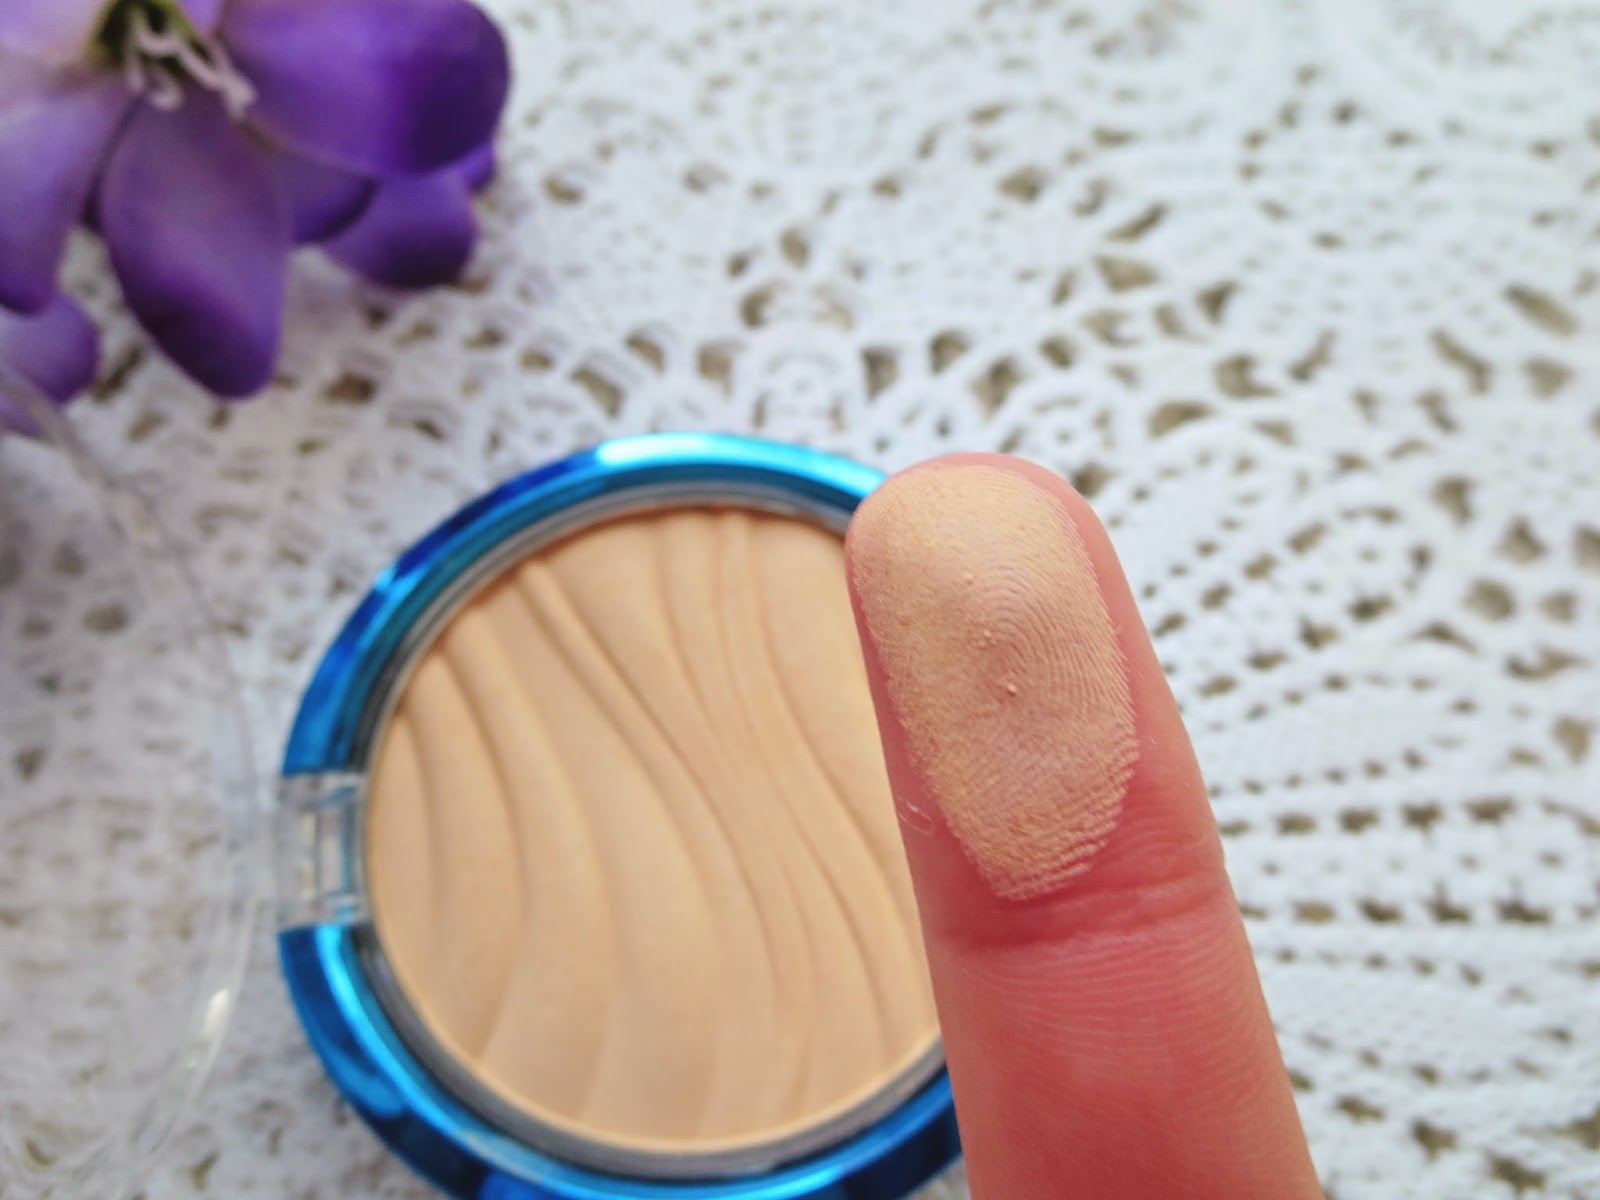 a picture of Physician's Formula Air Brushing Pressed Powder SPF 30 in Translucent (swatch)